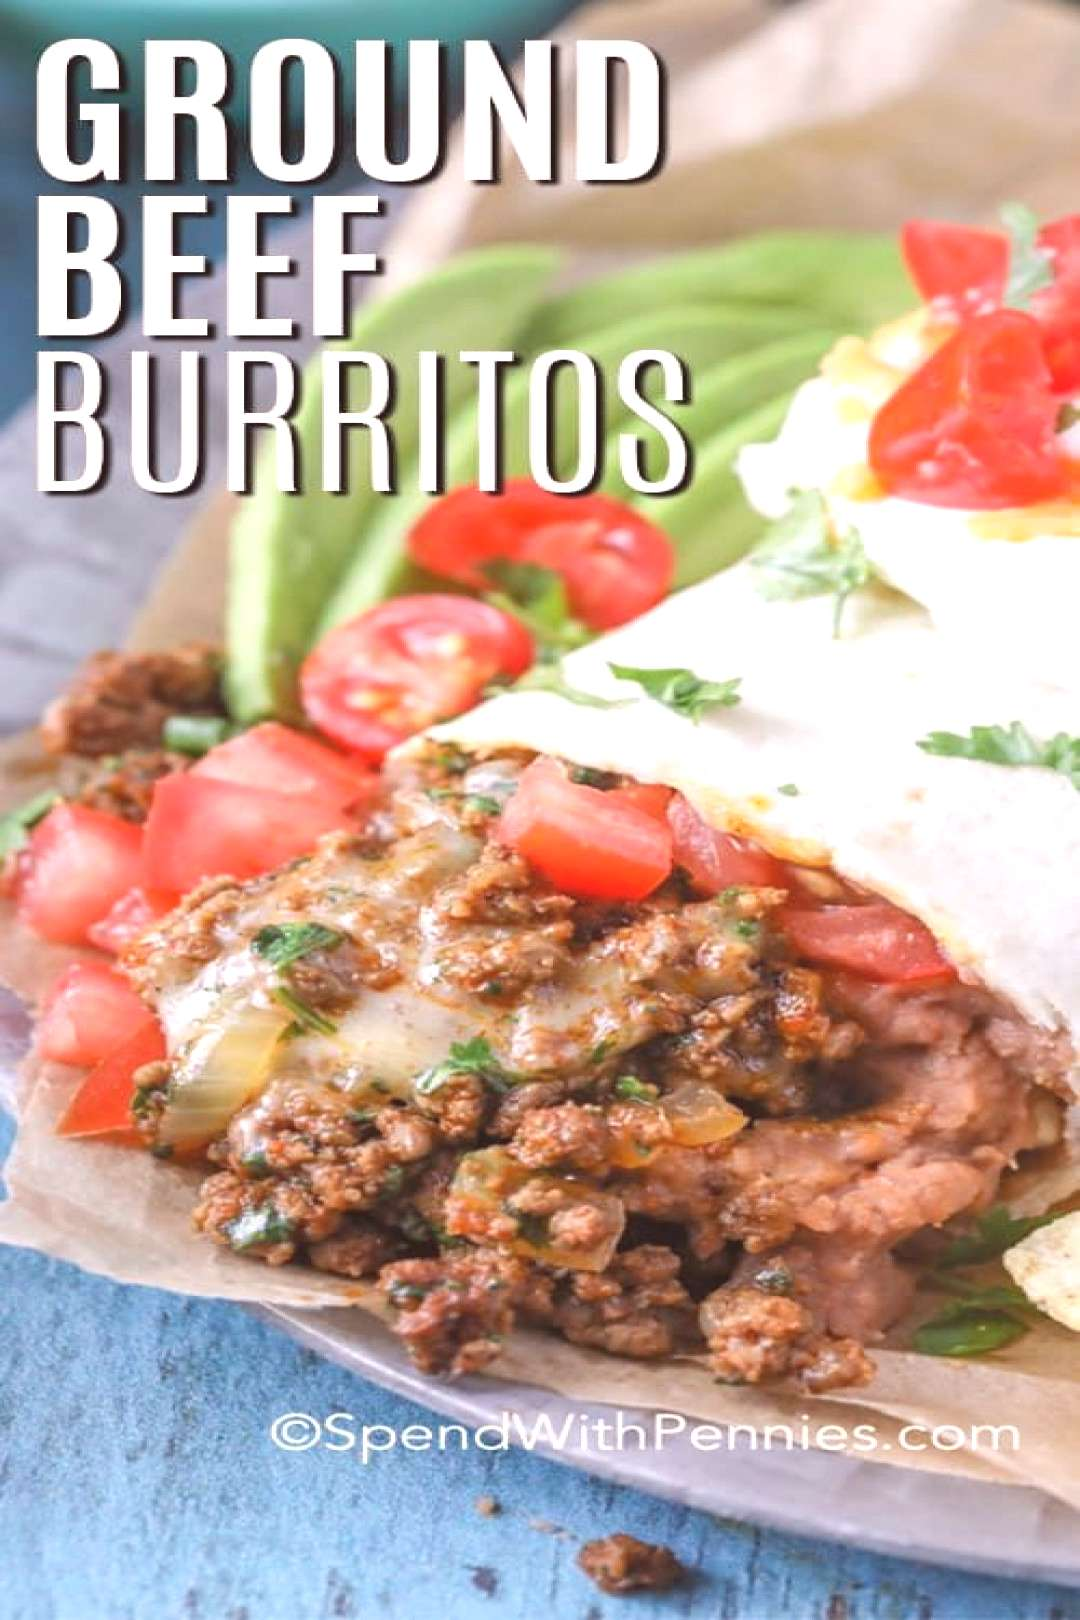 Favorite Beef Burritos (ground beef) - Spend With Pennies, Favorite Beef Burritos (ground beef) -